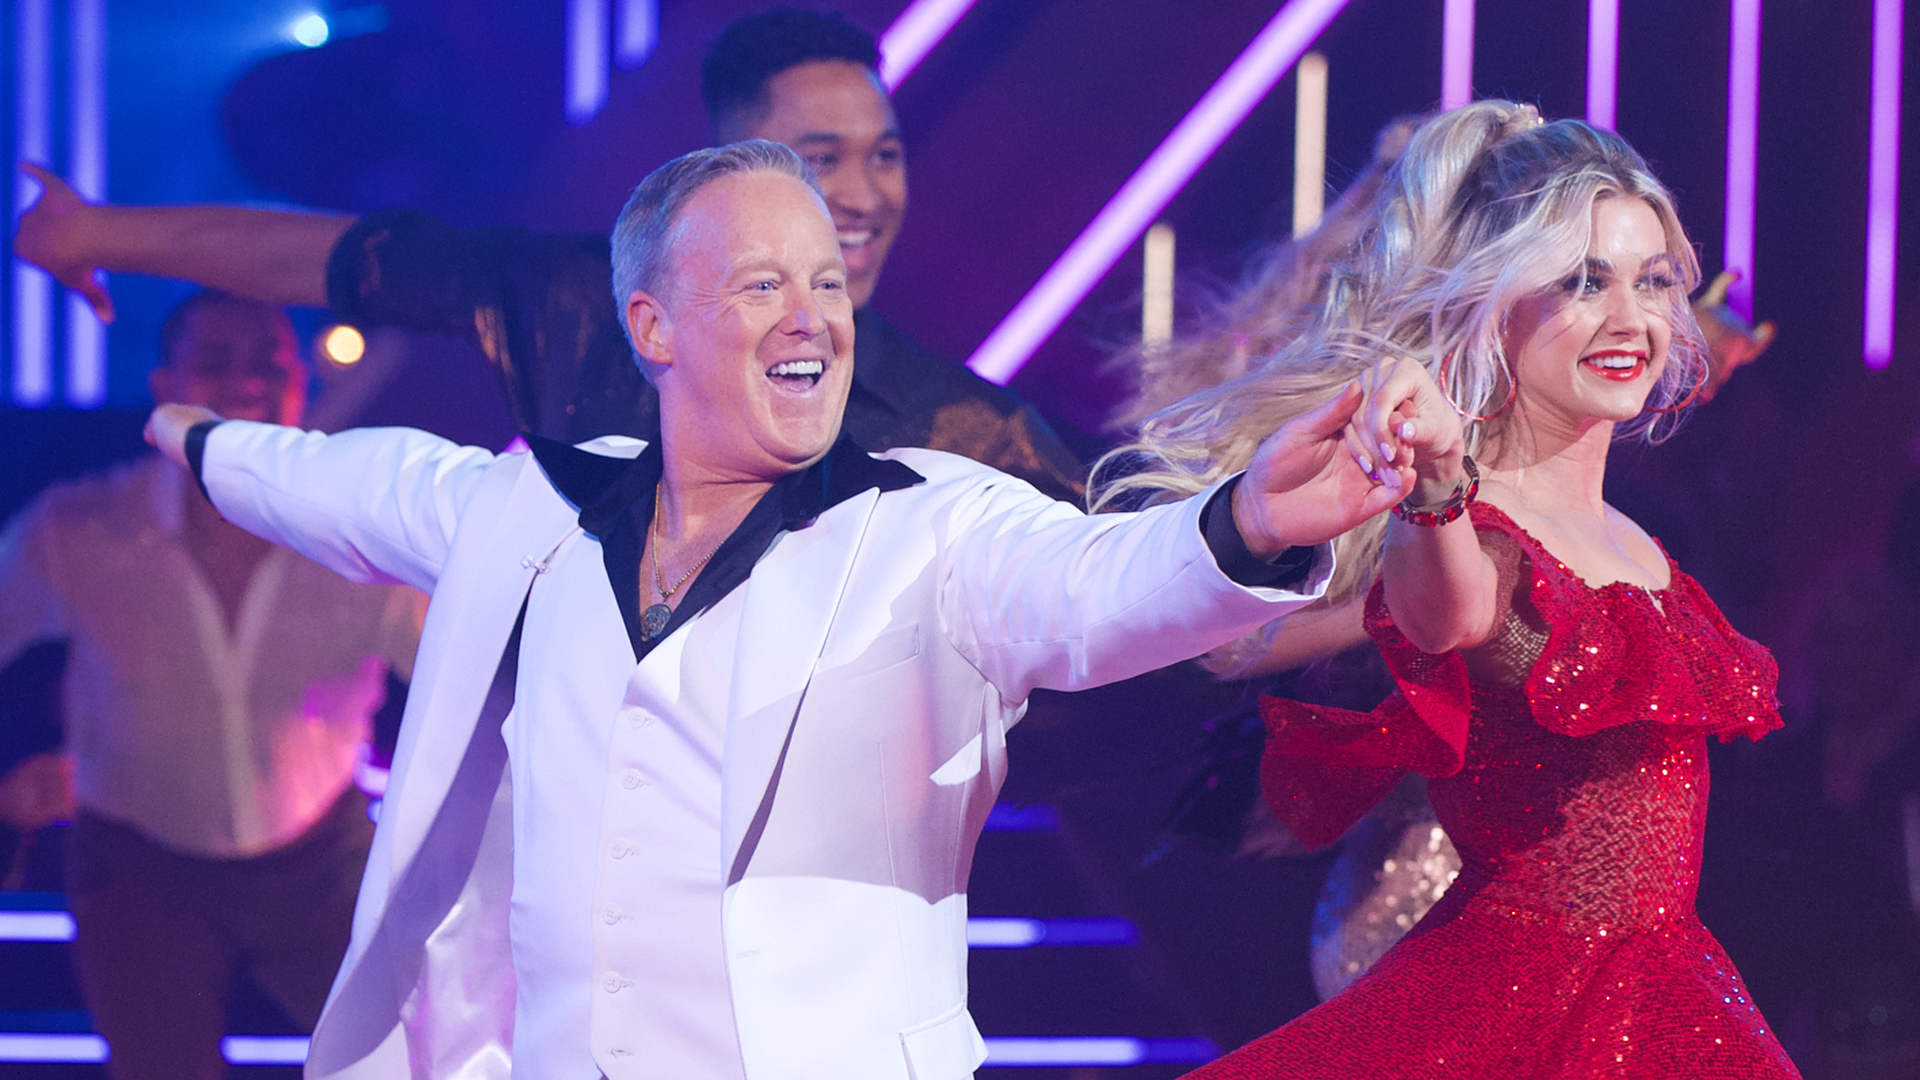 """Sean Spicer and Lindsay Arnold compete on """"Dancing with the Stars"""" on Sept. 30, 2019. (Credit: Eric McCandless/ABC via Getty Images)"""